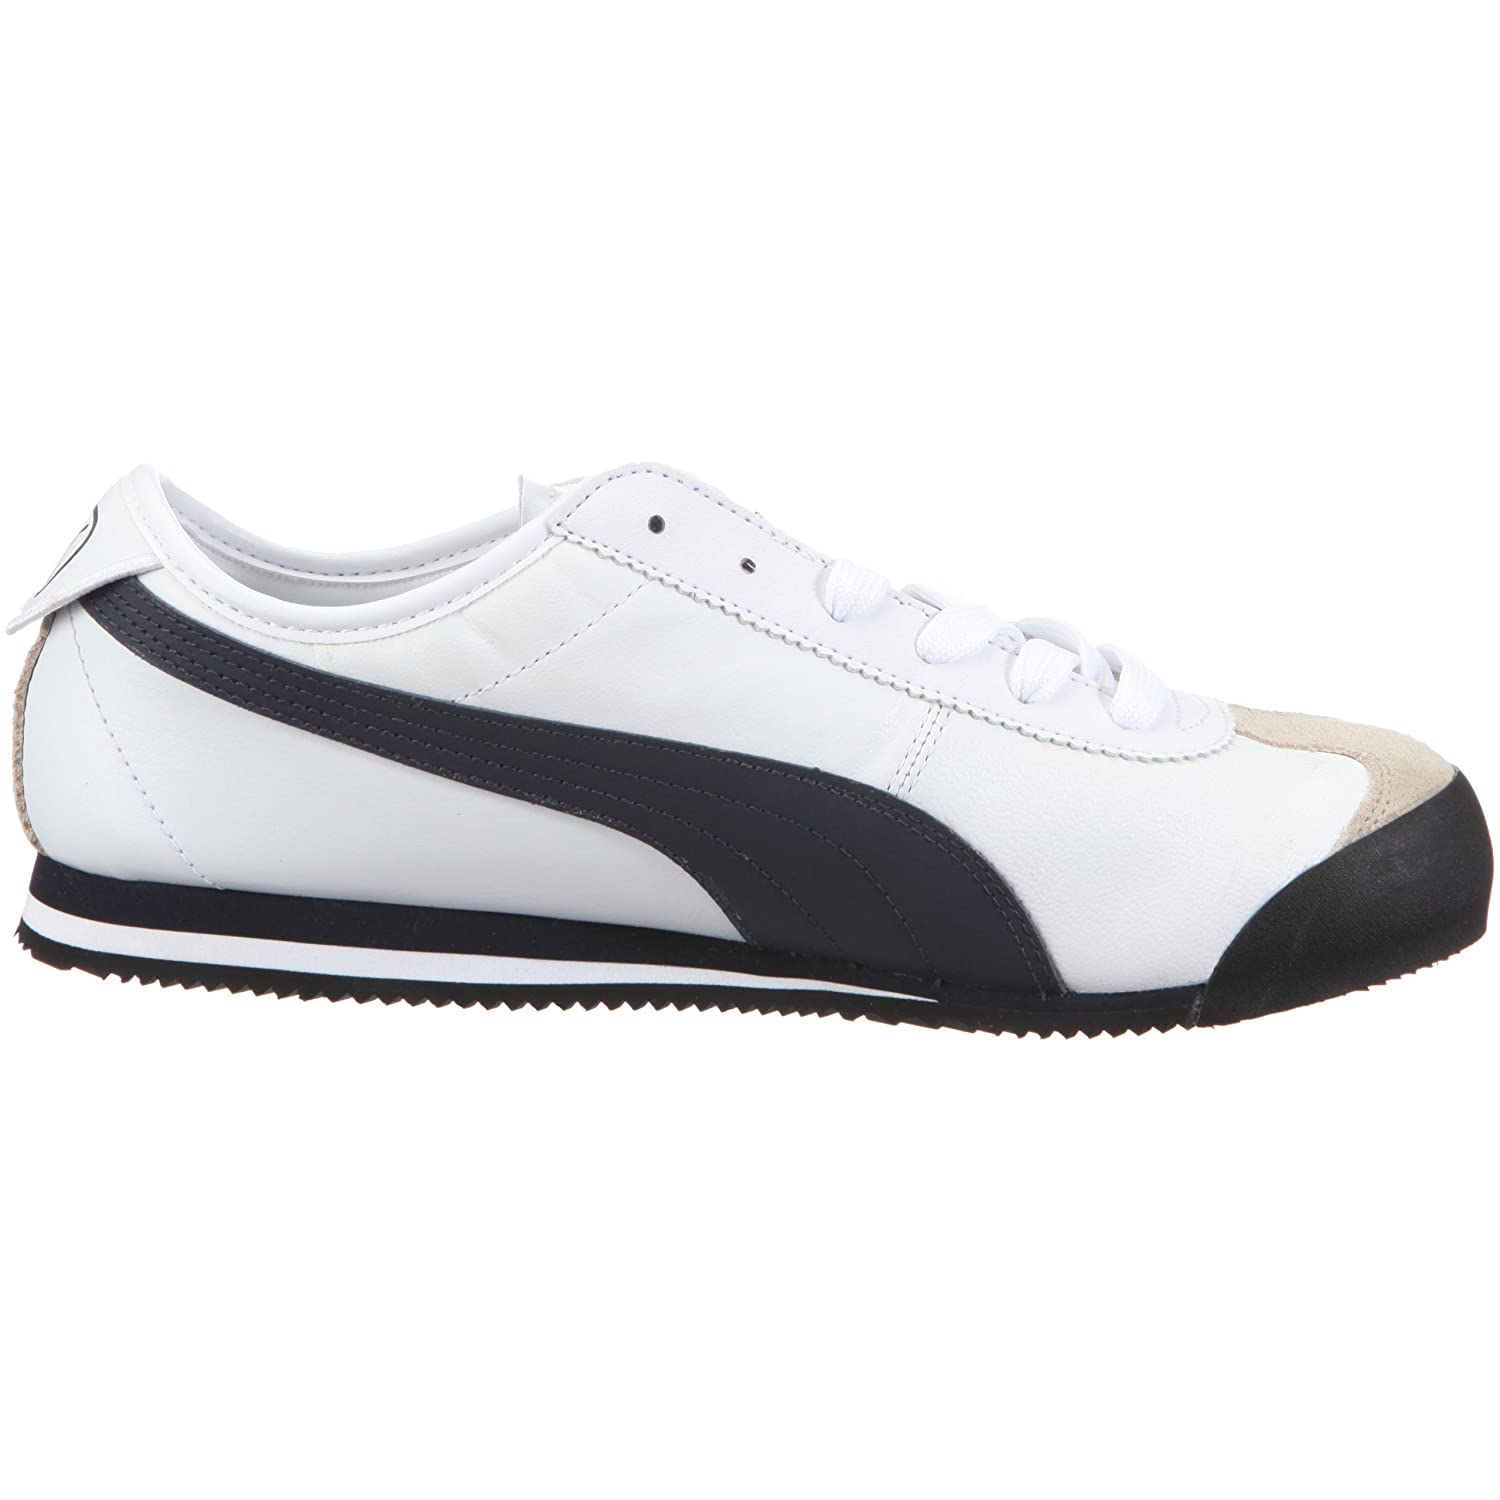 Puma Roma 68 For Salg xE3oUO2B